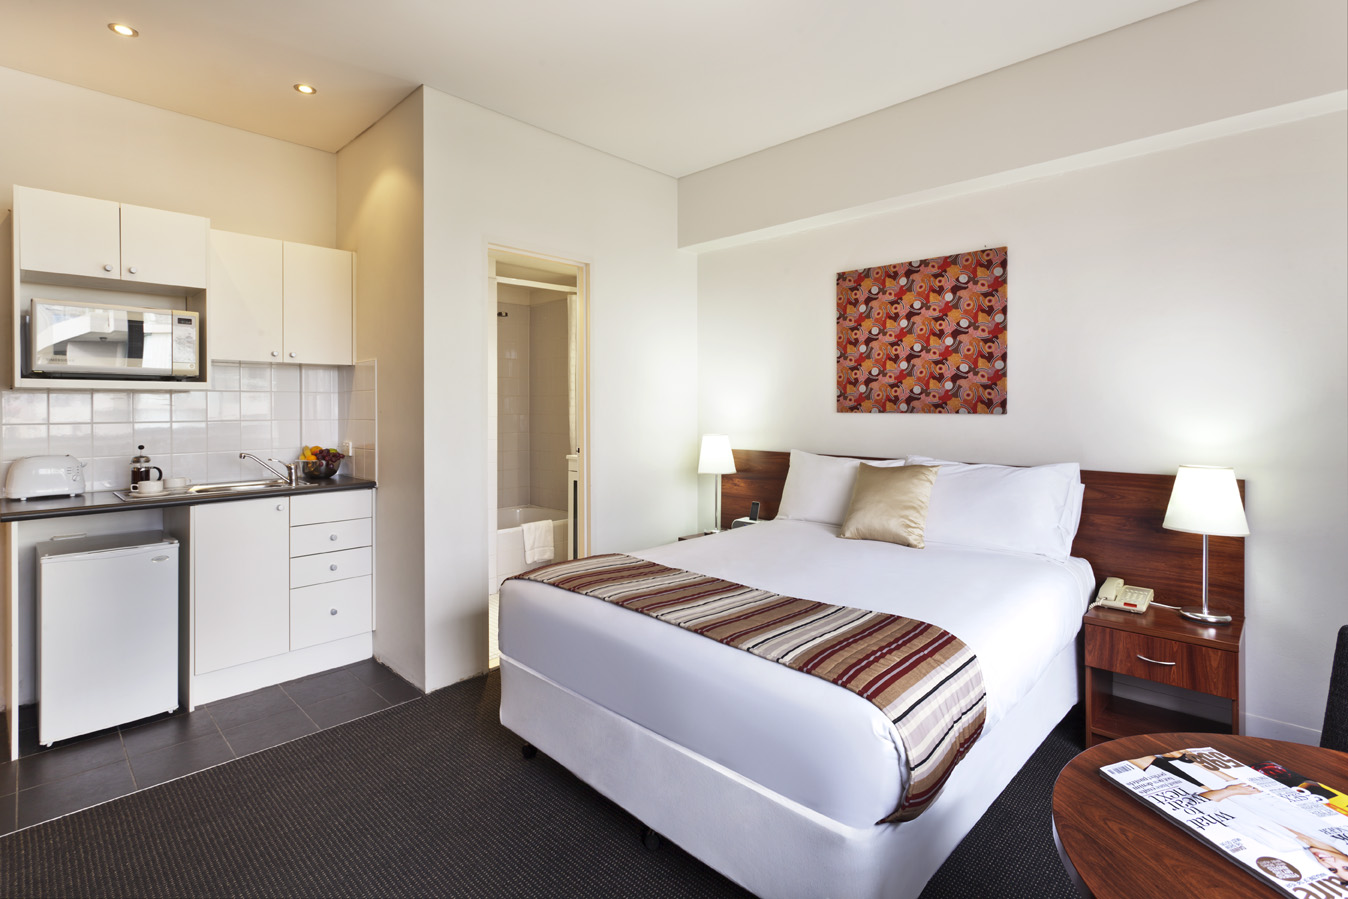 Spacious Studio hotel room with Queen Bed at The Macleay Hotel in Potts Point